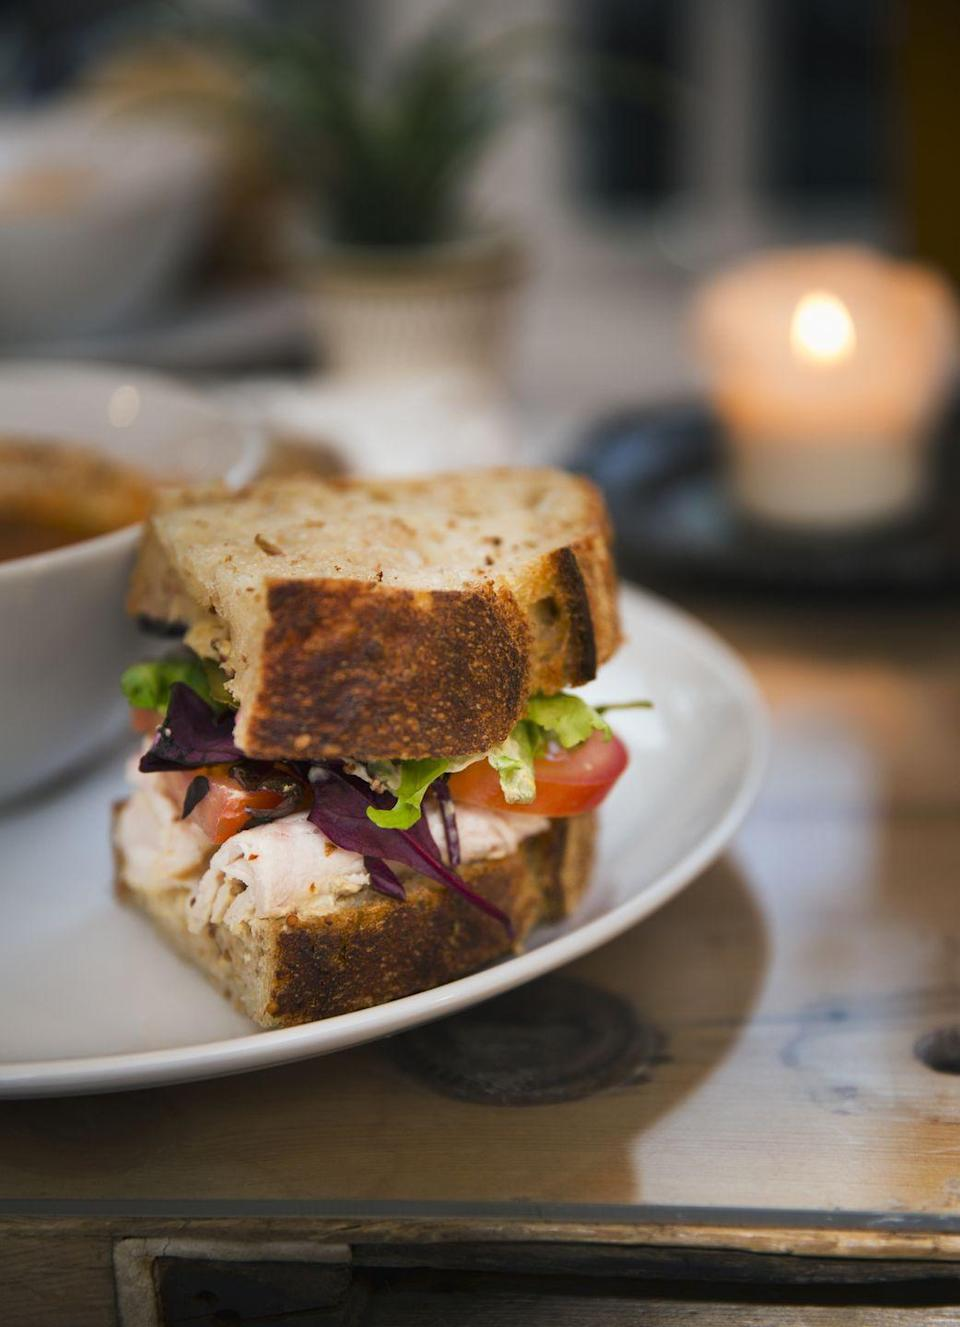 """<p>They take sandwiches pretty seriously in this New England state. In 2006, <a href=""""http://www.npr.org/sections/alltechconsidered/2014/06/26/325803580/what-burritos-and-sandwiches-can-teach-us-about-innovation"""" rel=""""nofollow noopener"""" target=""""_blank"""" data-ylk=""""slk:a contract dispute"""" class=""""link rapid-noclick-resp"""">a contract dispute</a> regarding whether or not a Qdoba Mexican Grill burrito could qualify as a sandwich went to trial (really). The ruling? <a href=""""https://loweringthebar.net/2006/11/judge_rules_bur.html"""" rel=""""nofollow noopener"""" target=""""_blank"""" data-ylk=""""slk:Burritos are not sandwiches"""" class=""""link rapid-noclick-resp"""">Burritos are not sandwiches</a> — only foods made with two pieces of bread with a filling (meat, cheese, or both) can carry that name. </p>"""